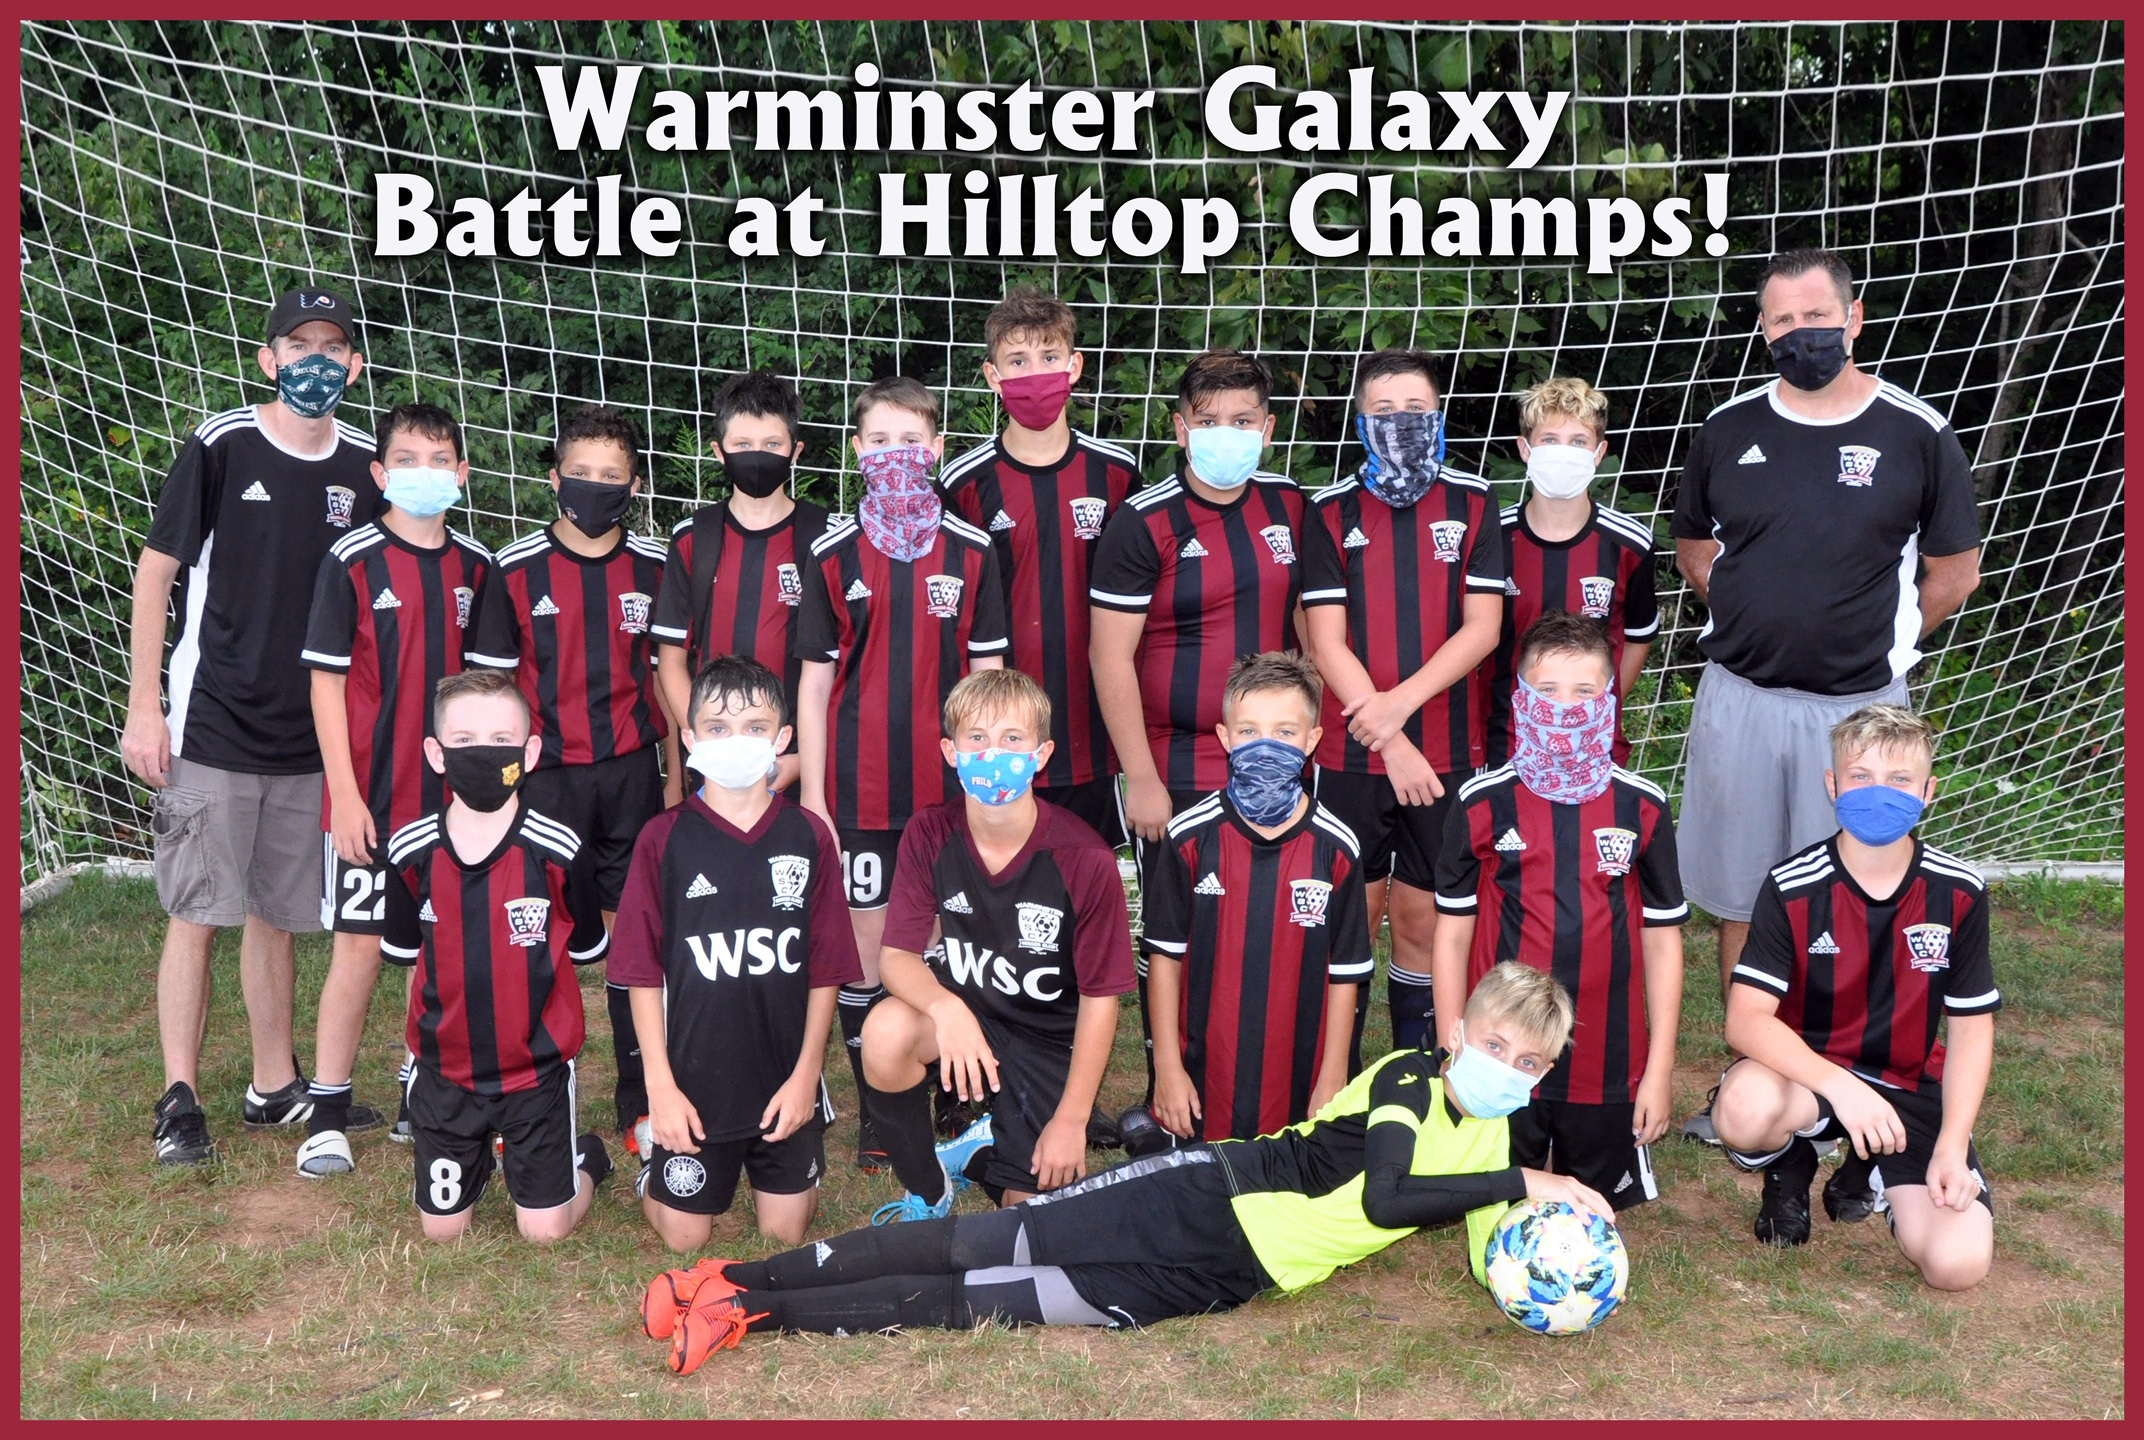 Congratulations WSC Galaxy 2008 Boys – Undefeated Champions – 2020 Battle at Hilltop Tournament